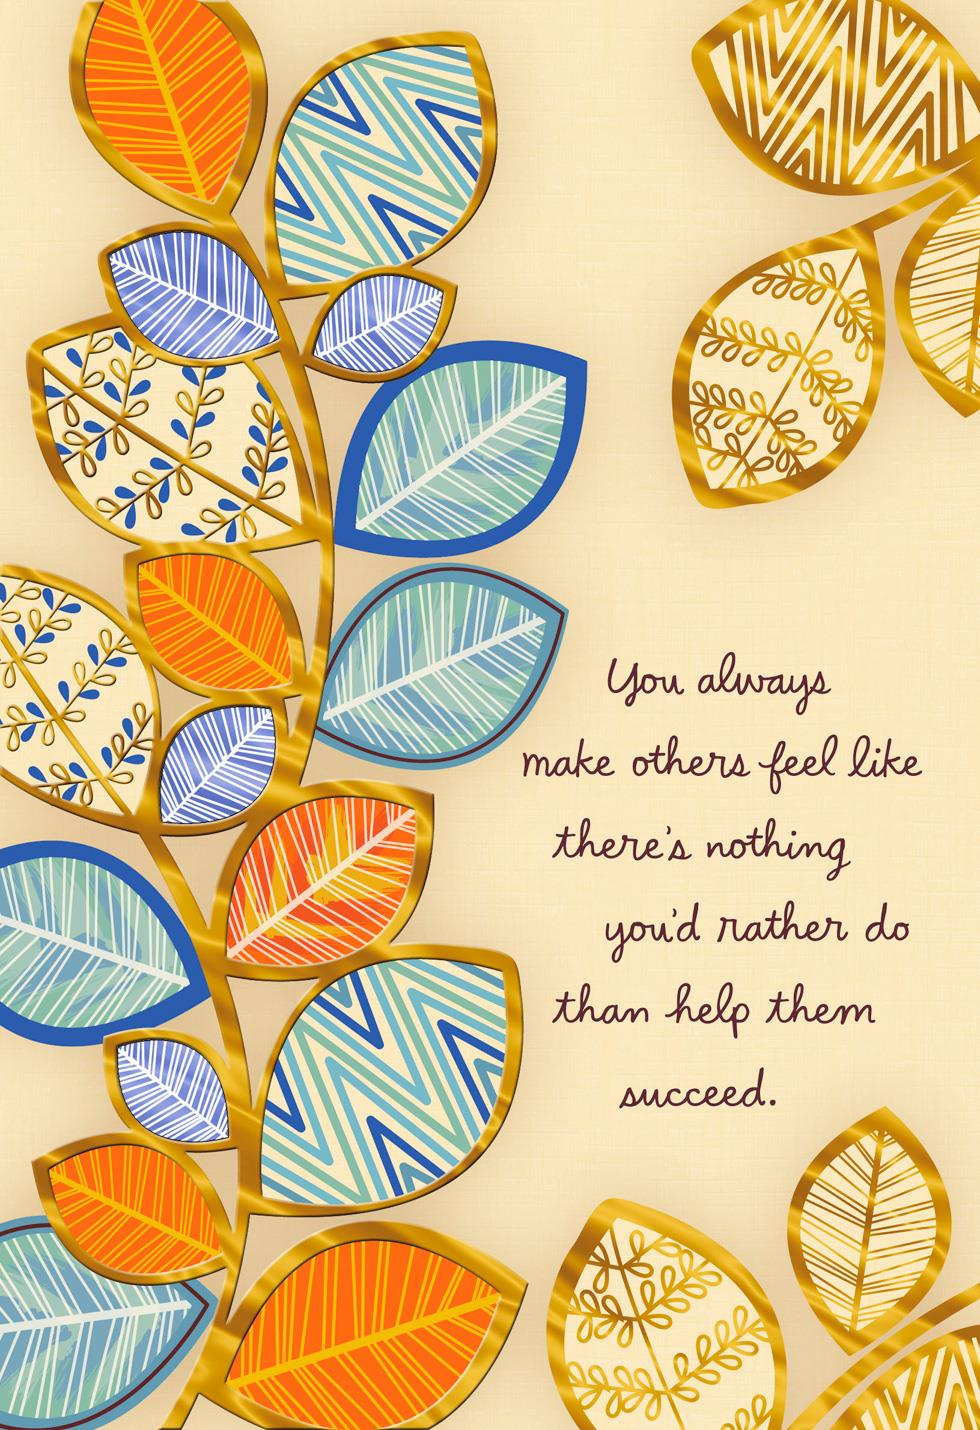 National boss day cards hallmark thanks for helping me succeed bosss day card m4hsunfo Image collections